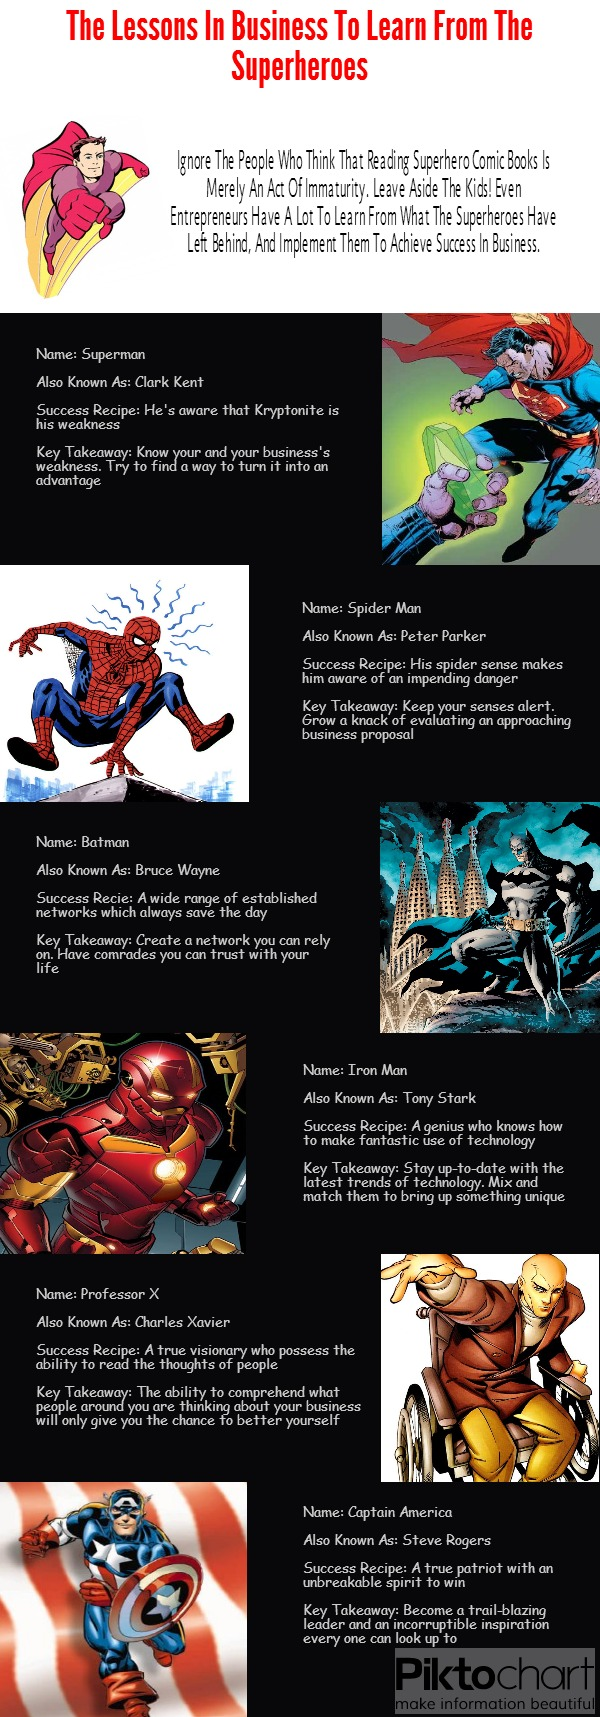 Tips For Entrepreneurs   Get Inspired By Superheroes [Infographic] image Business Lessons From Superheroes